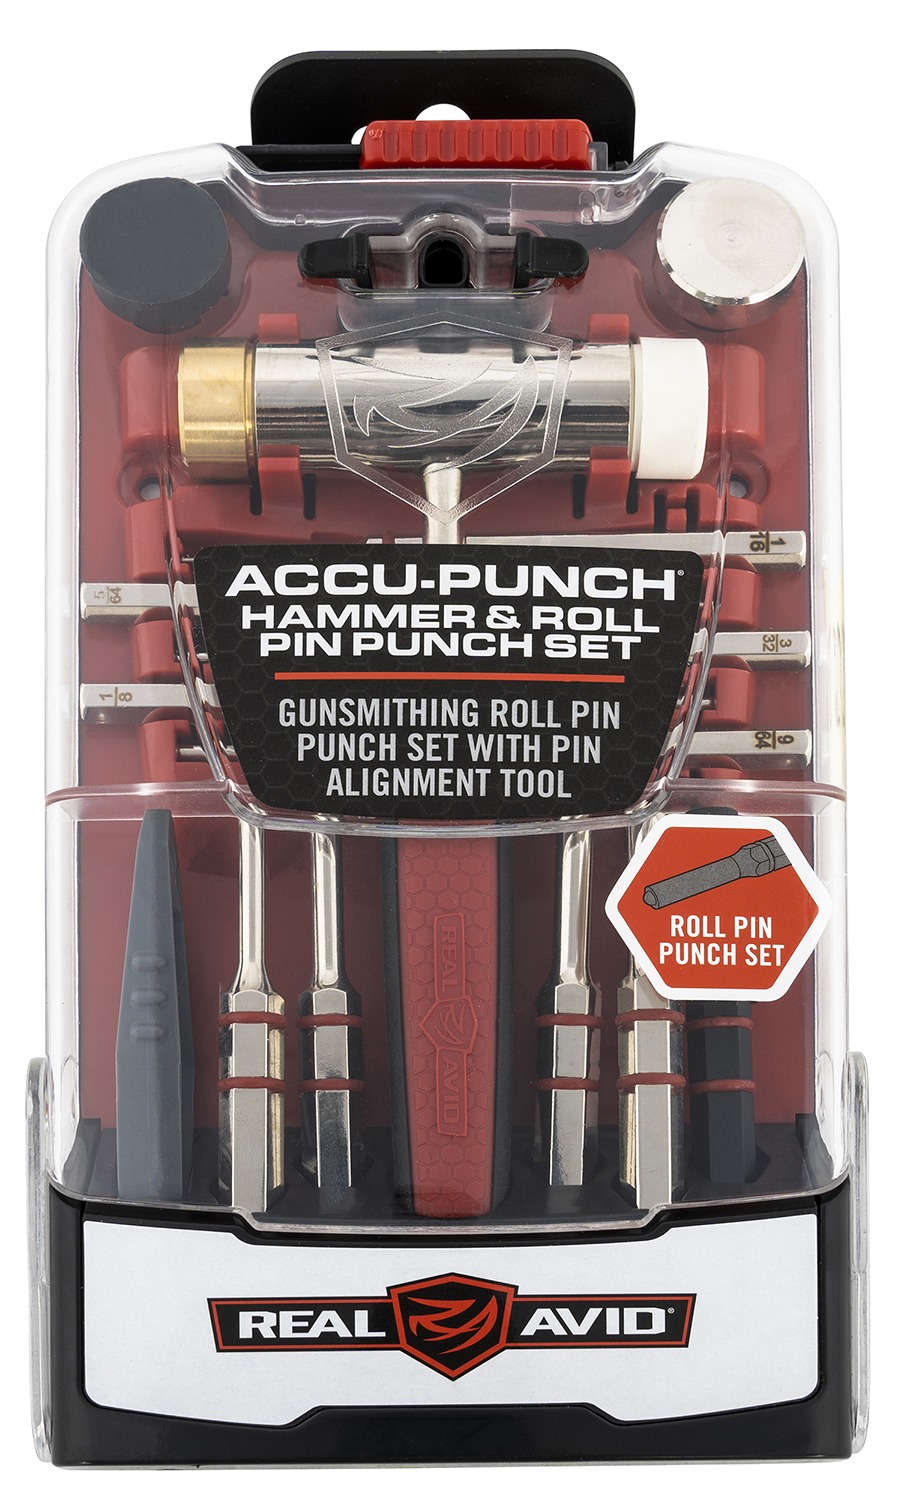 Real Avid AVHPS-RP Accu-Punch Hammer & Roll Pin Punch Set Black/Red Steel Rubber Handle